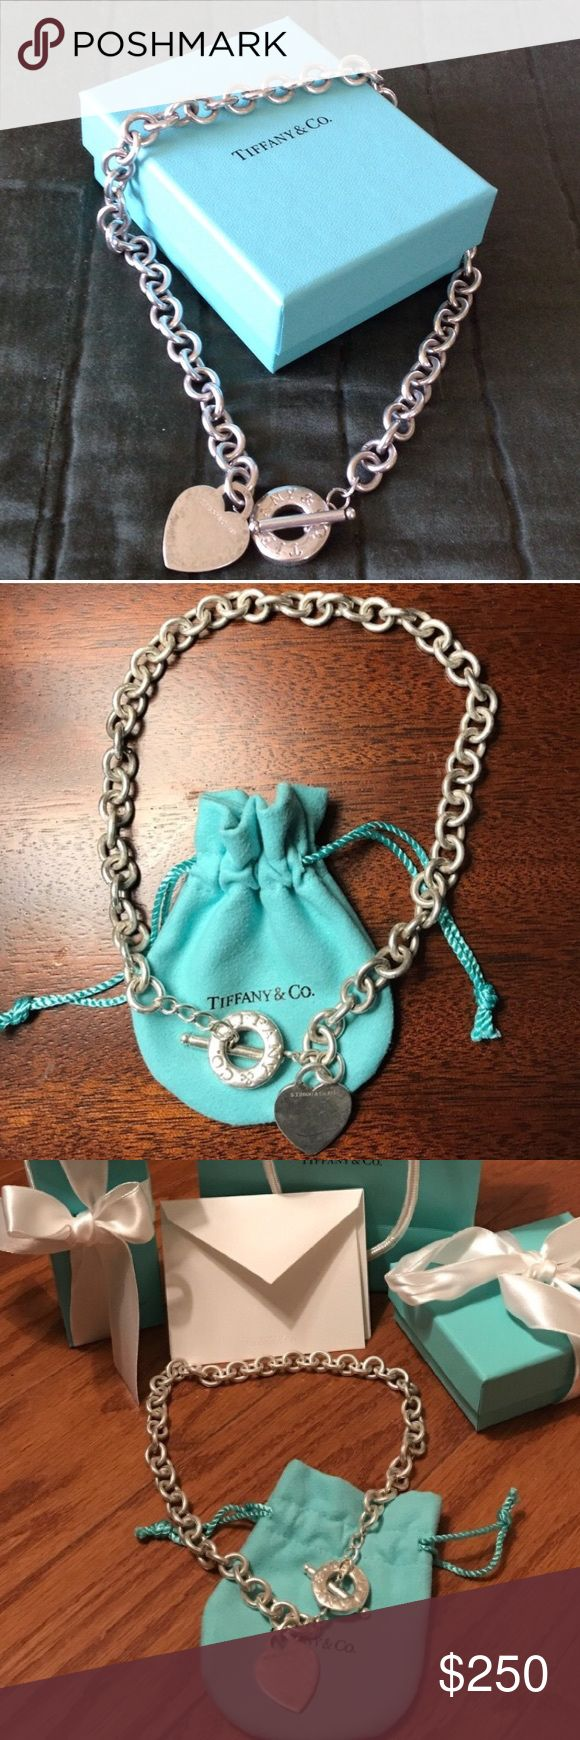 Tiffany and C.O heart necklace 100% authentic 100 percent authentic Tiffany and co necklace Tiffany & Co. Jewelry Necklaces